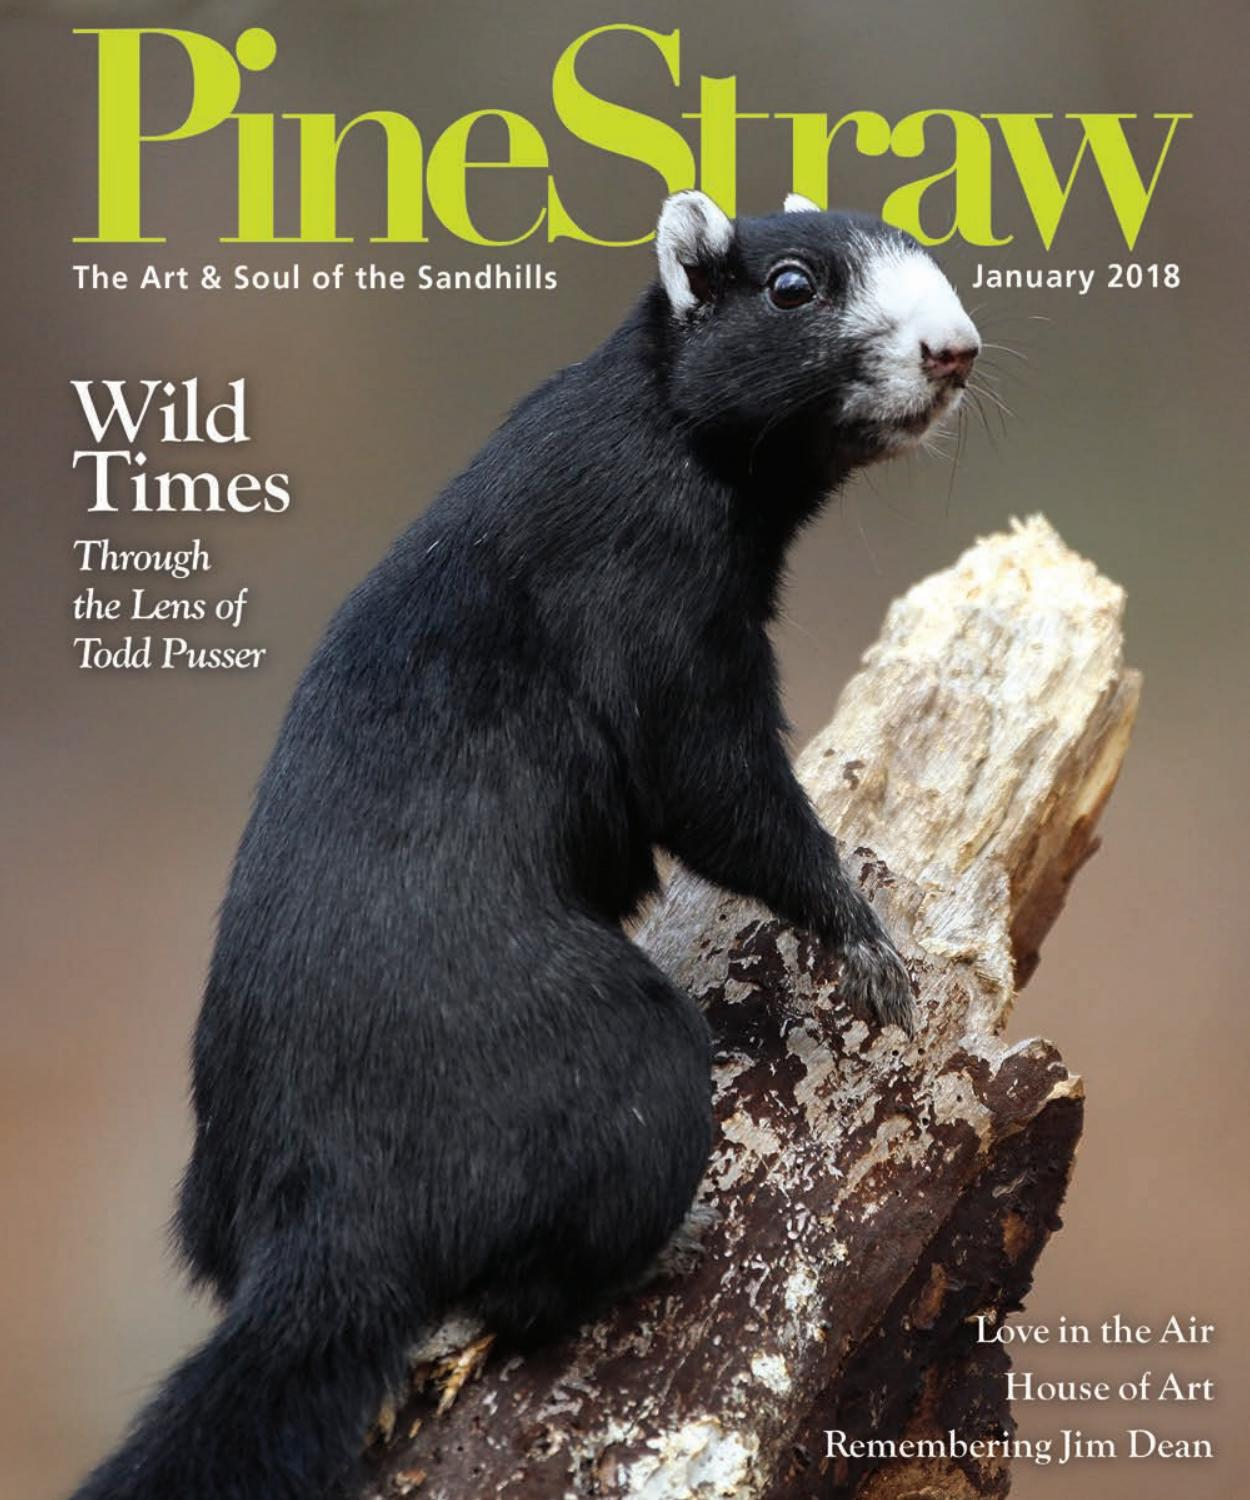 January PineStraw 2018 by PineStraw Magazine - issuu